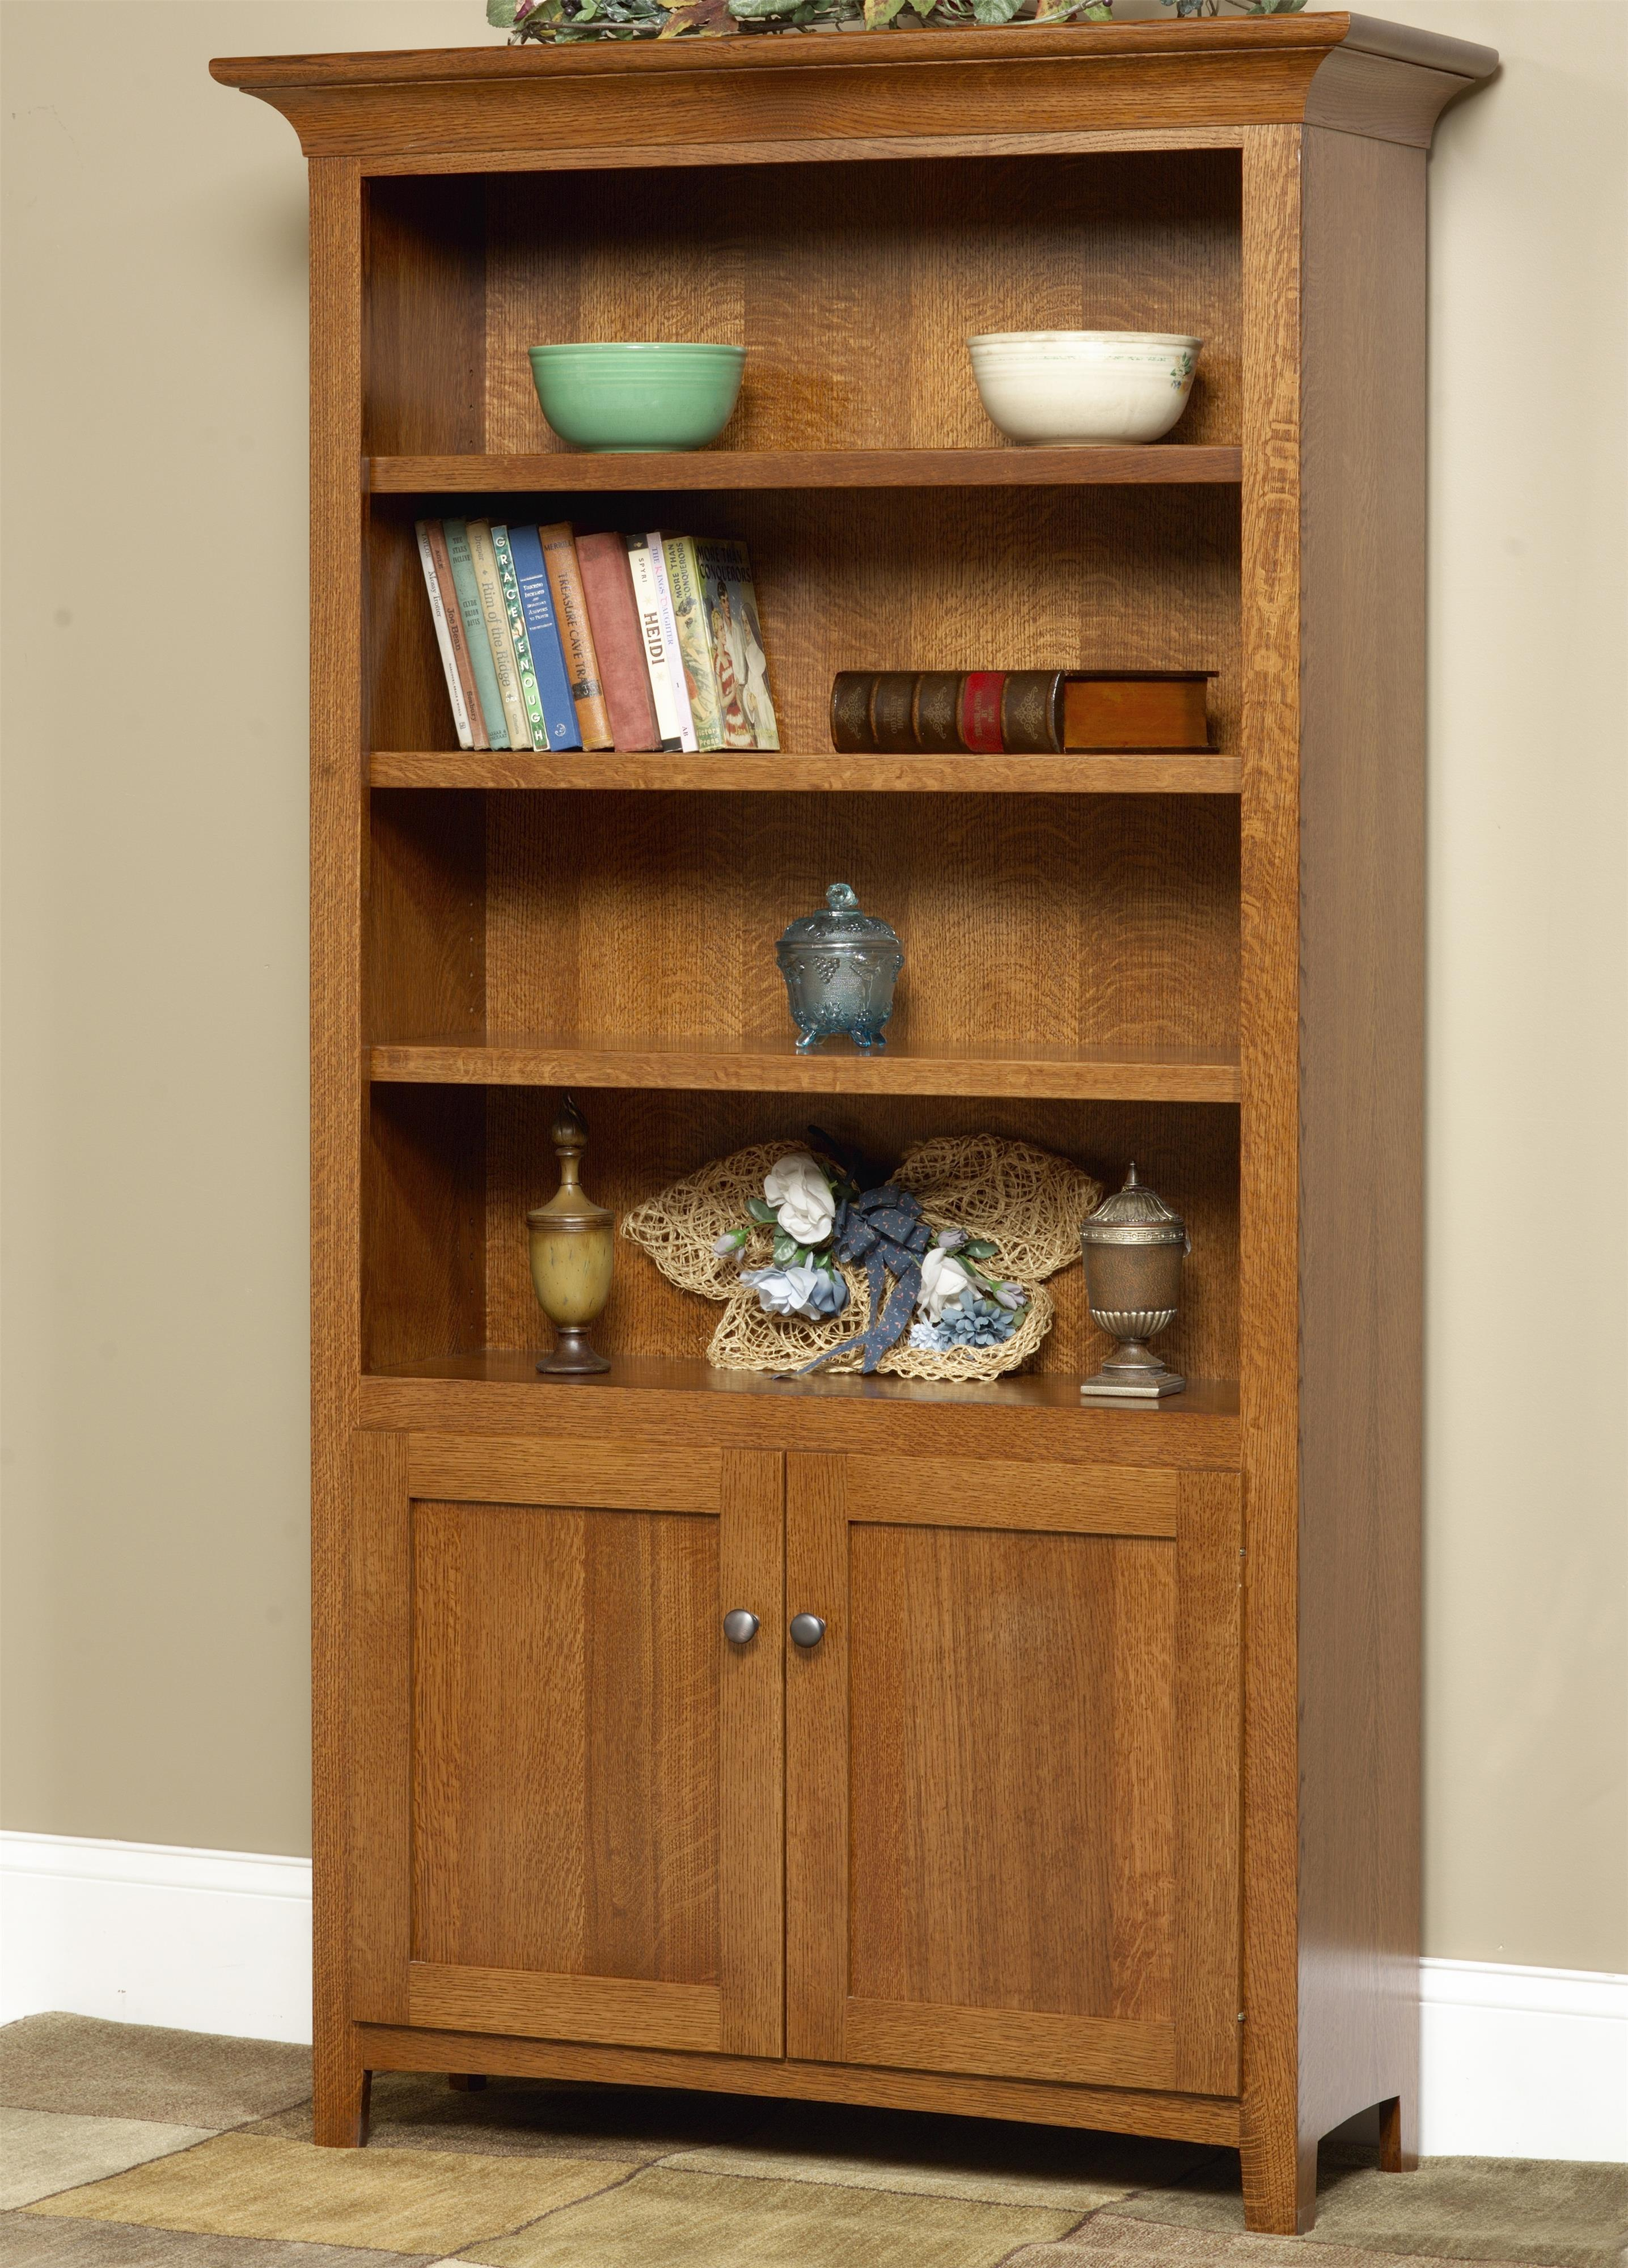 Wonder Wood Bookcases Customizable Millstone Bookcase by Wonder Wood at Saugerties Furniture Mart